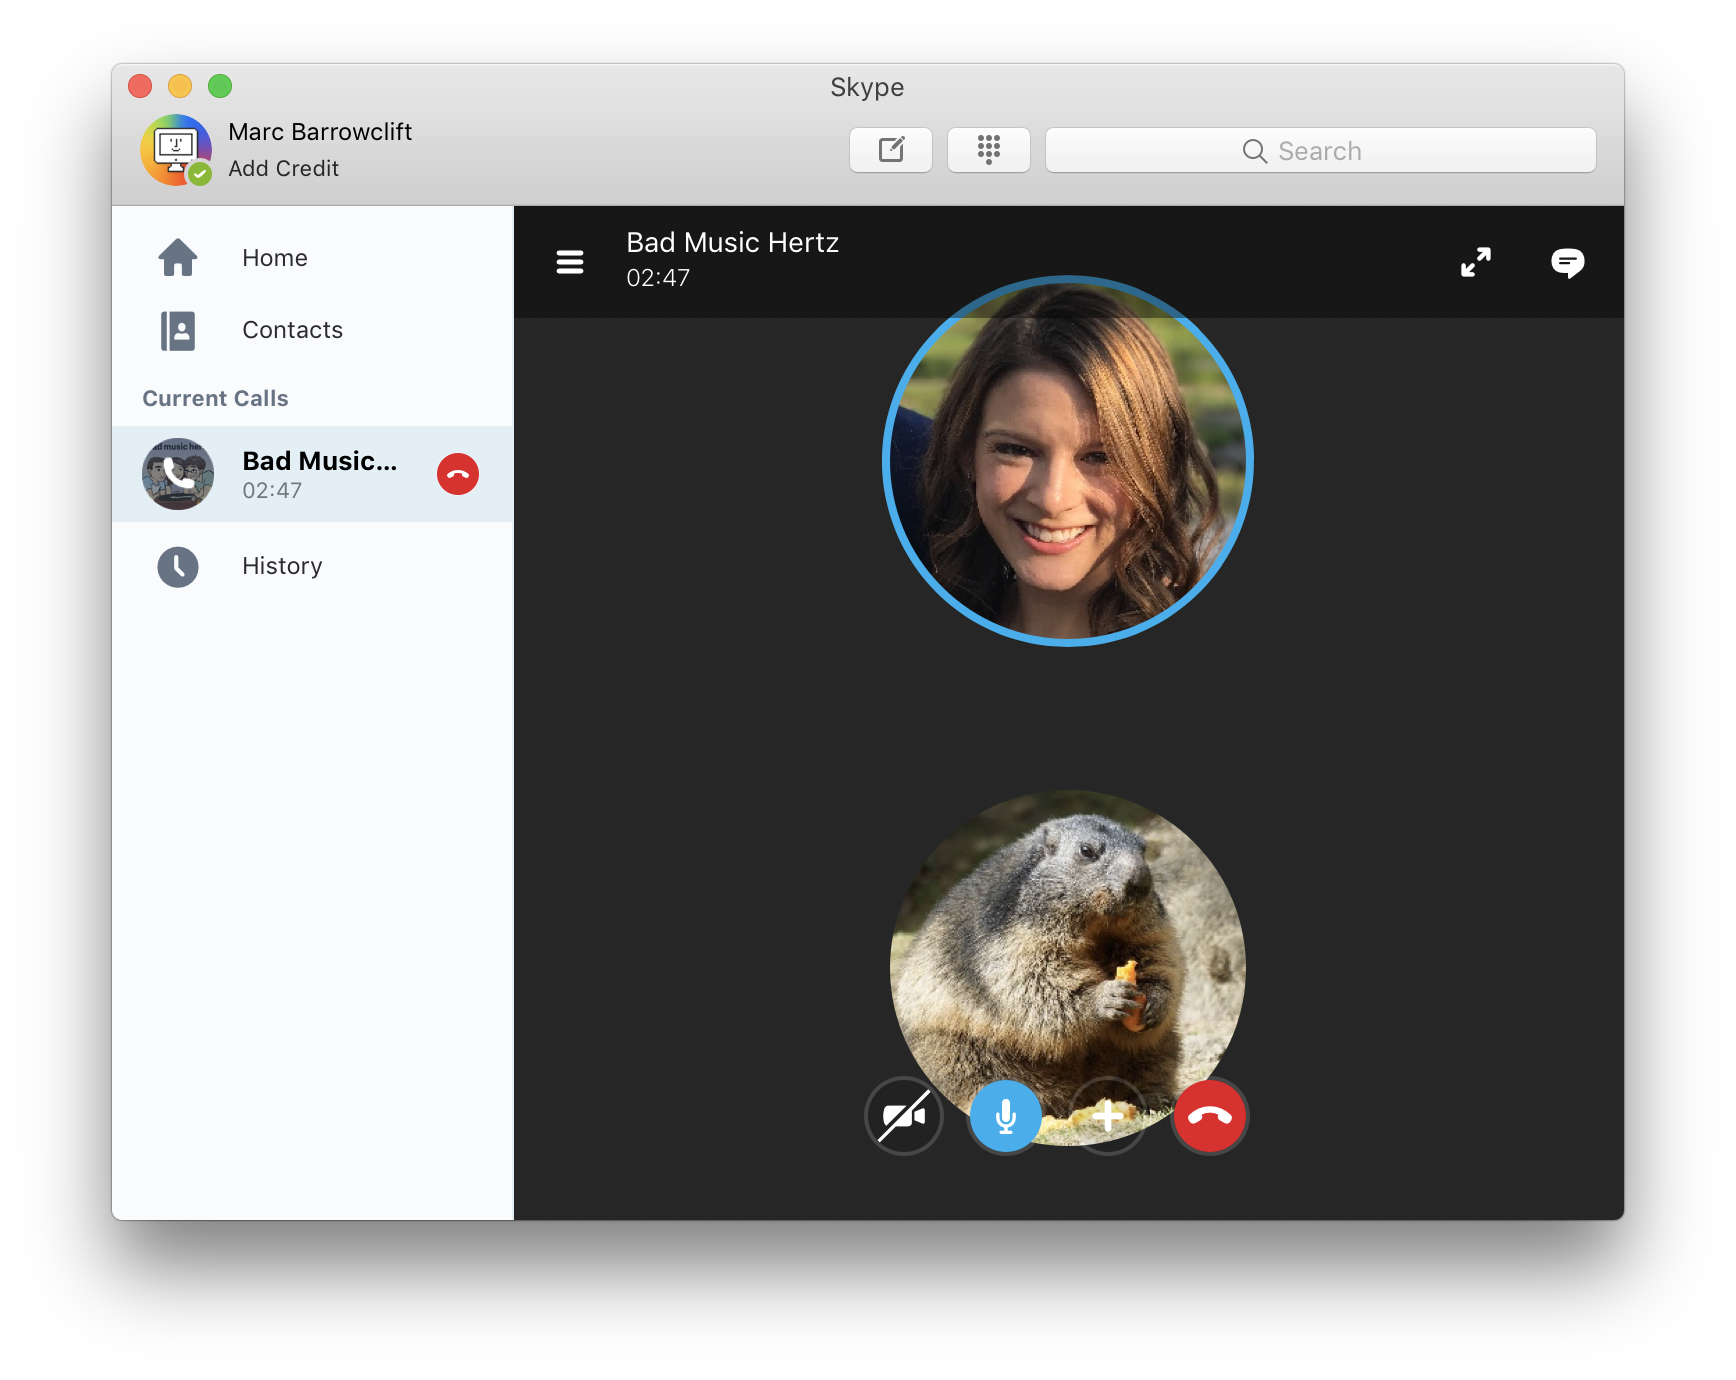 Screenshot of a Skype window with Aimee's avatar as a normal picture and Michael's as that of a fat marmot eating a Cheeto